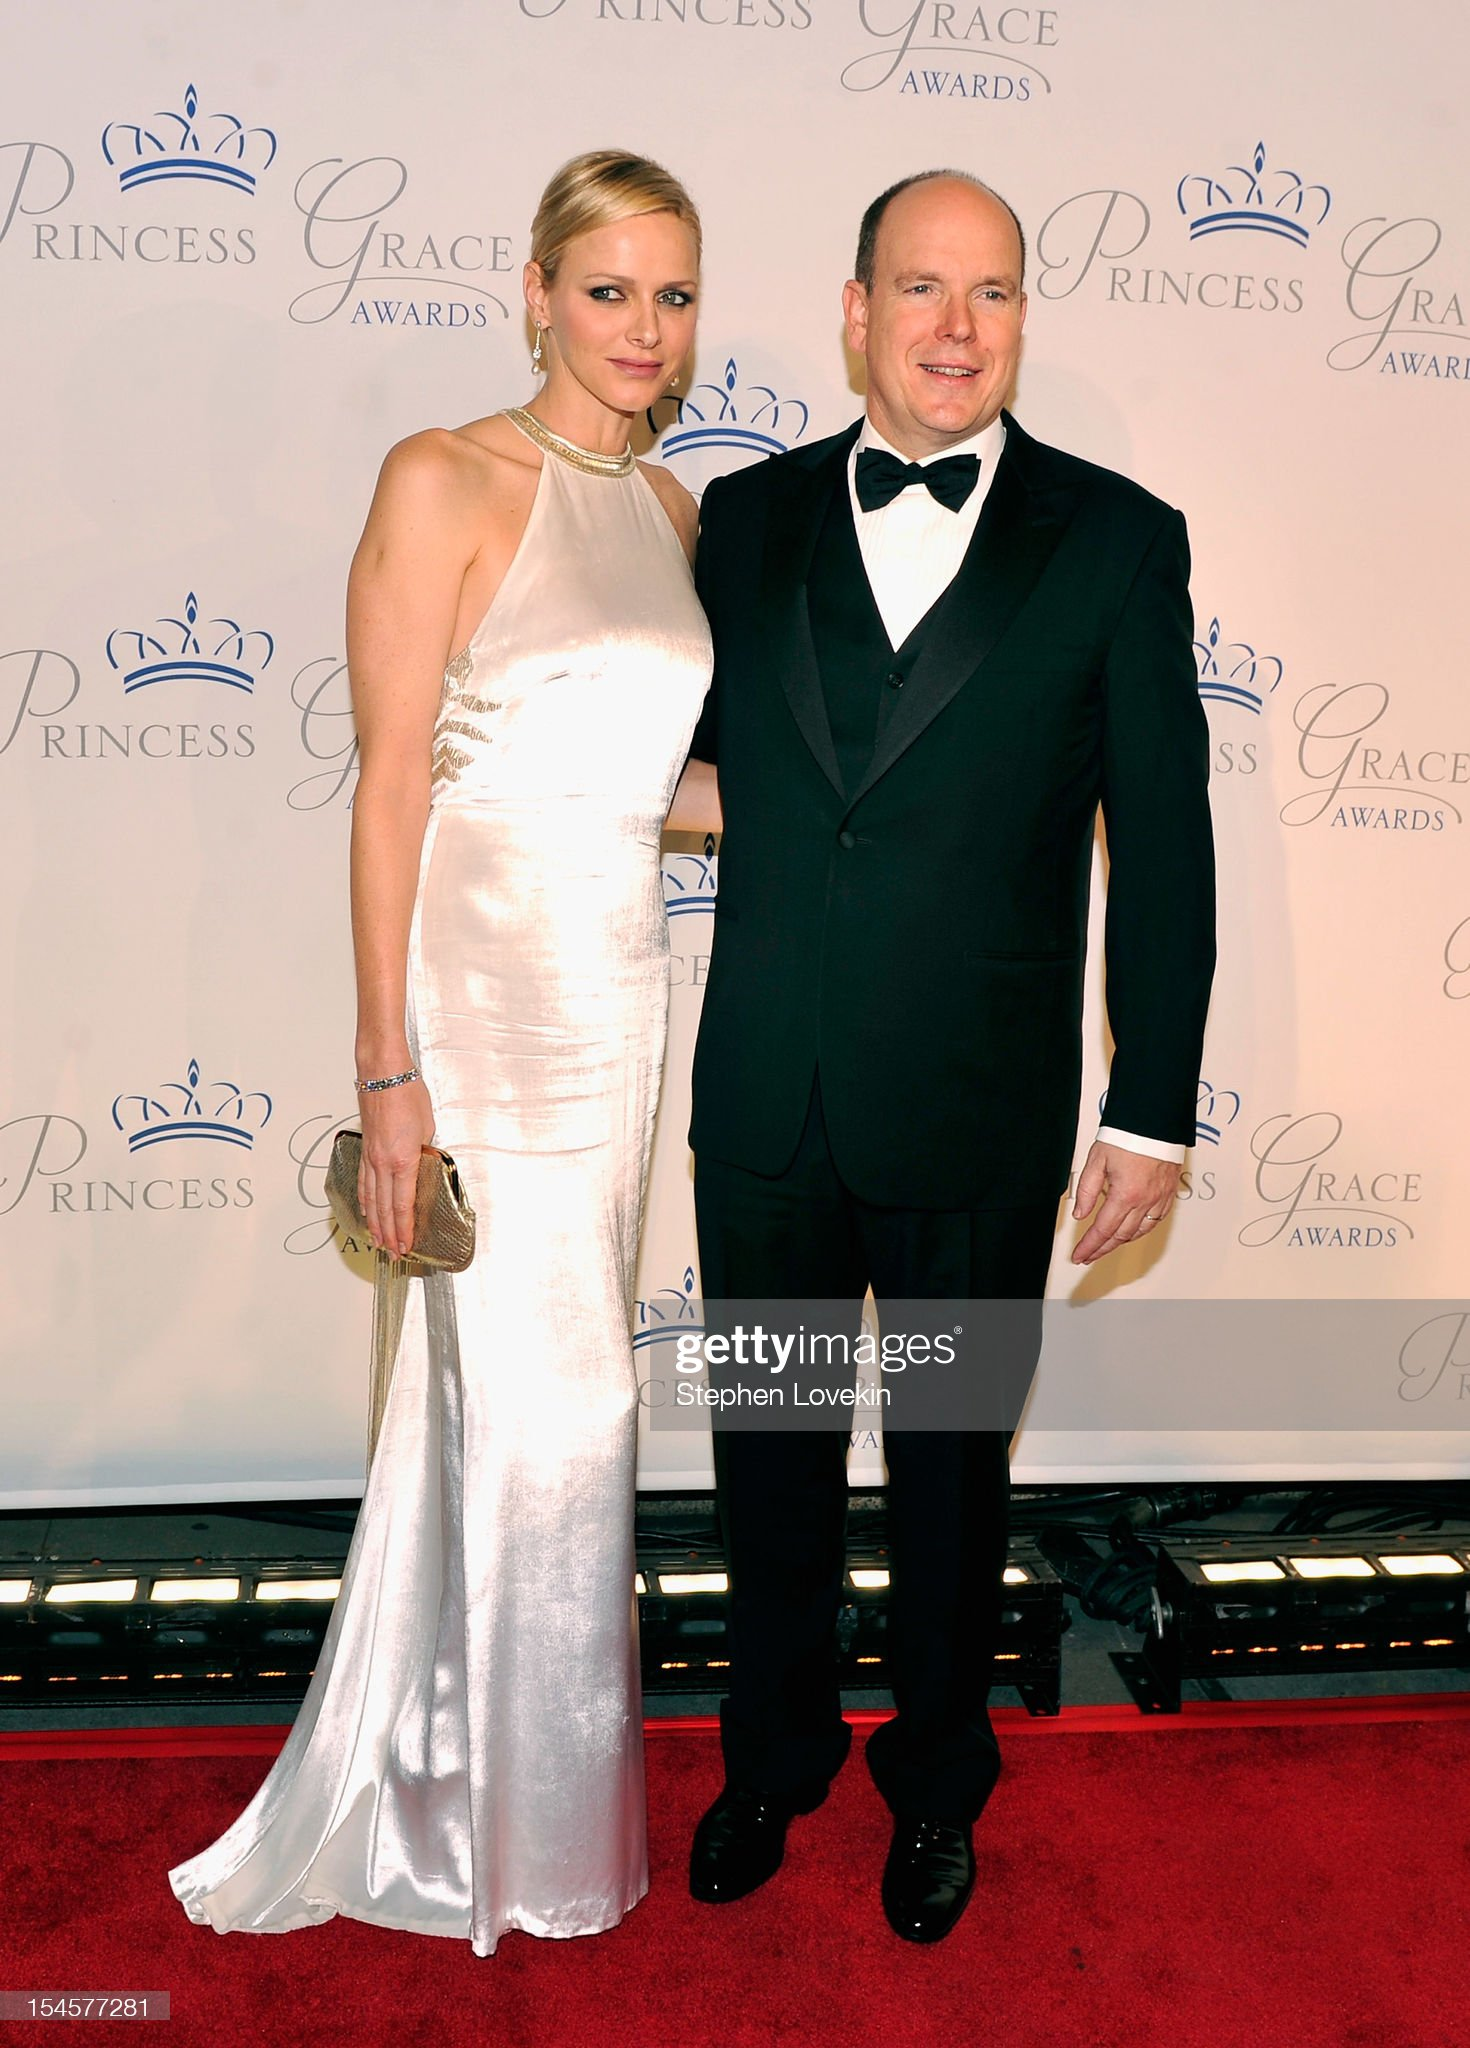 30th Anniversary Princess Grace Awards Gala - Arrivals : News Photo